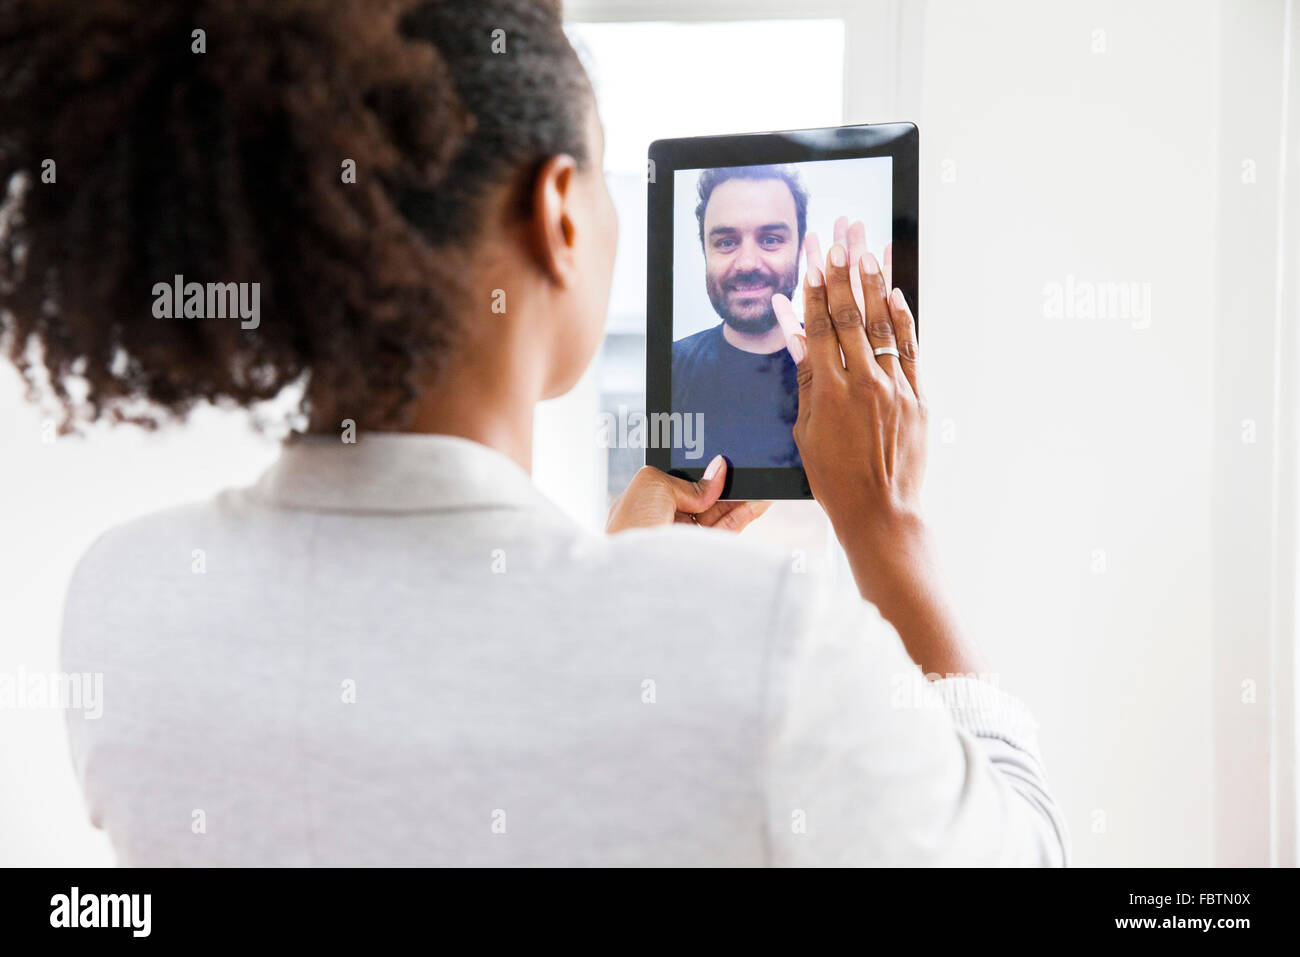 Couple video chat Photo Stock